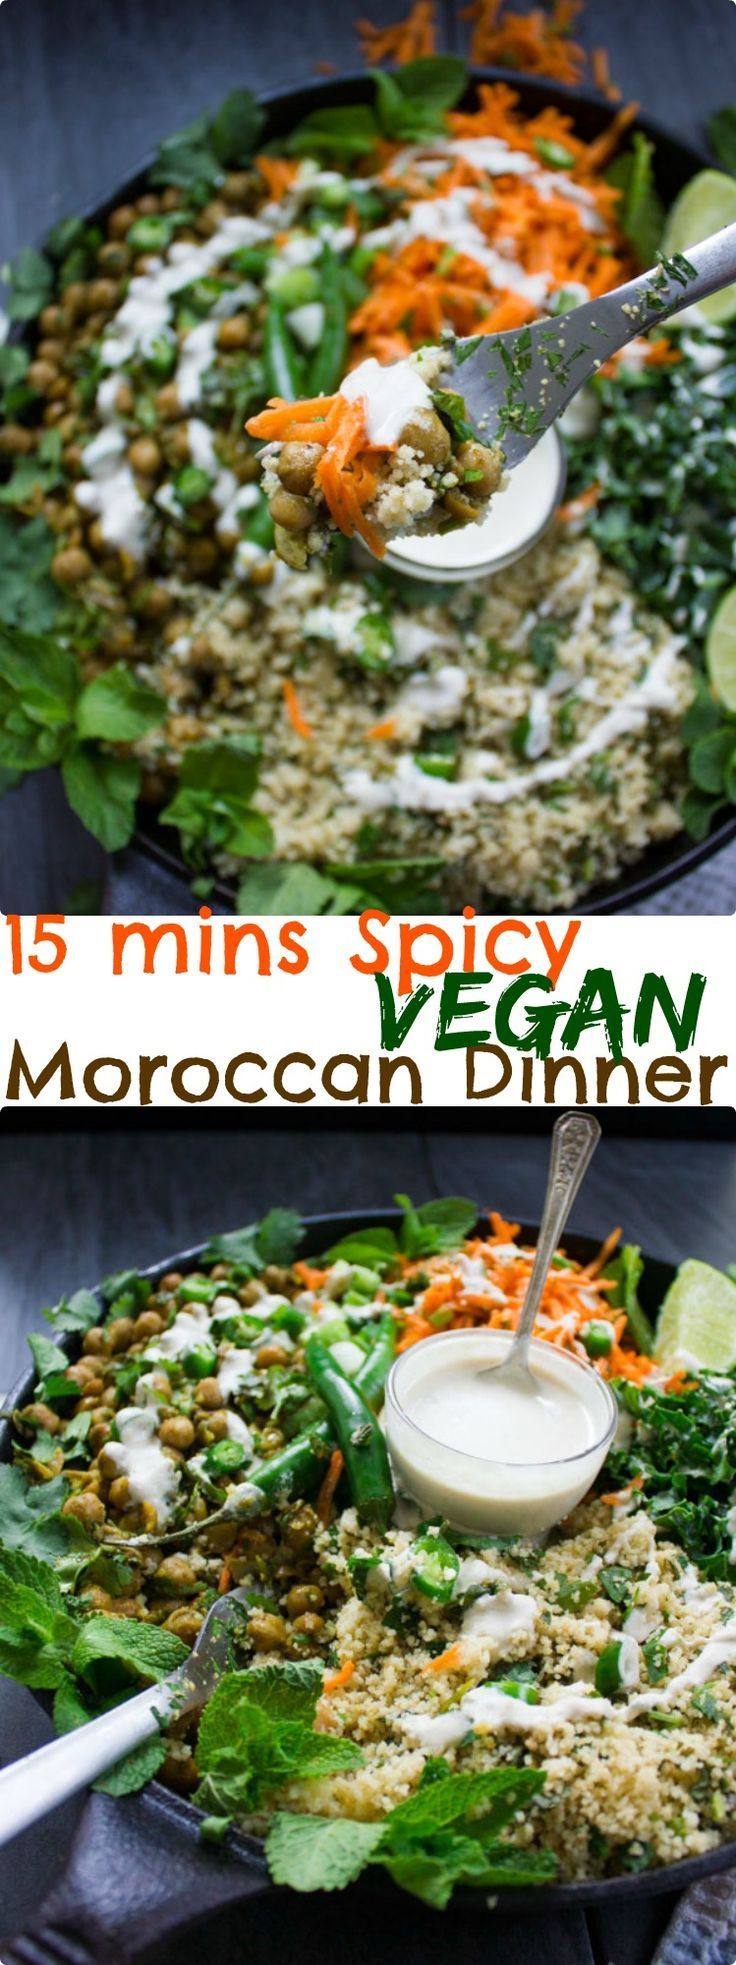 Spicy Vegan Chickpea Moroccan Couscous. Healthy, hearty and ultra satisfying! This recipe makes Vegan dinners a breeze--quick, easy and an absolute crowd pleaser! http://www.twopurplefigs.com